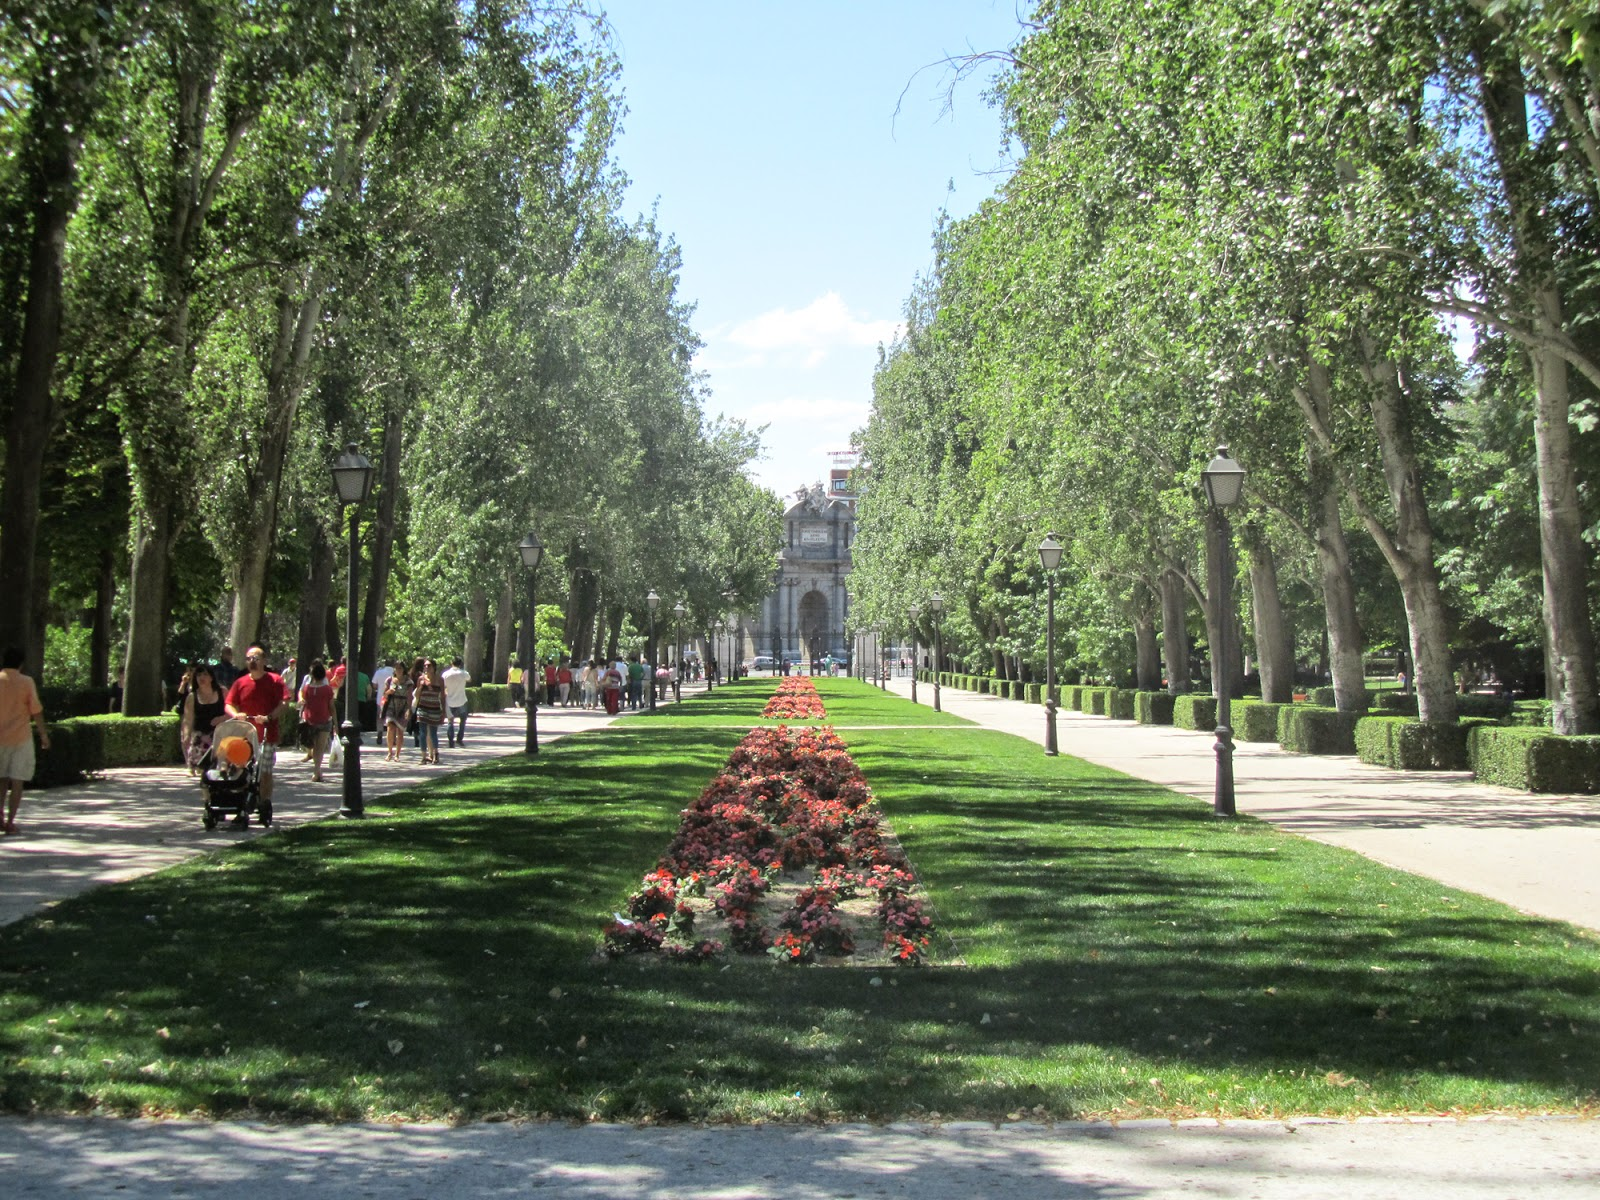 http://toriism.blogspot.com/2014/09/tourism-program-to-visit-madrid.html